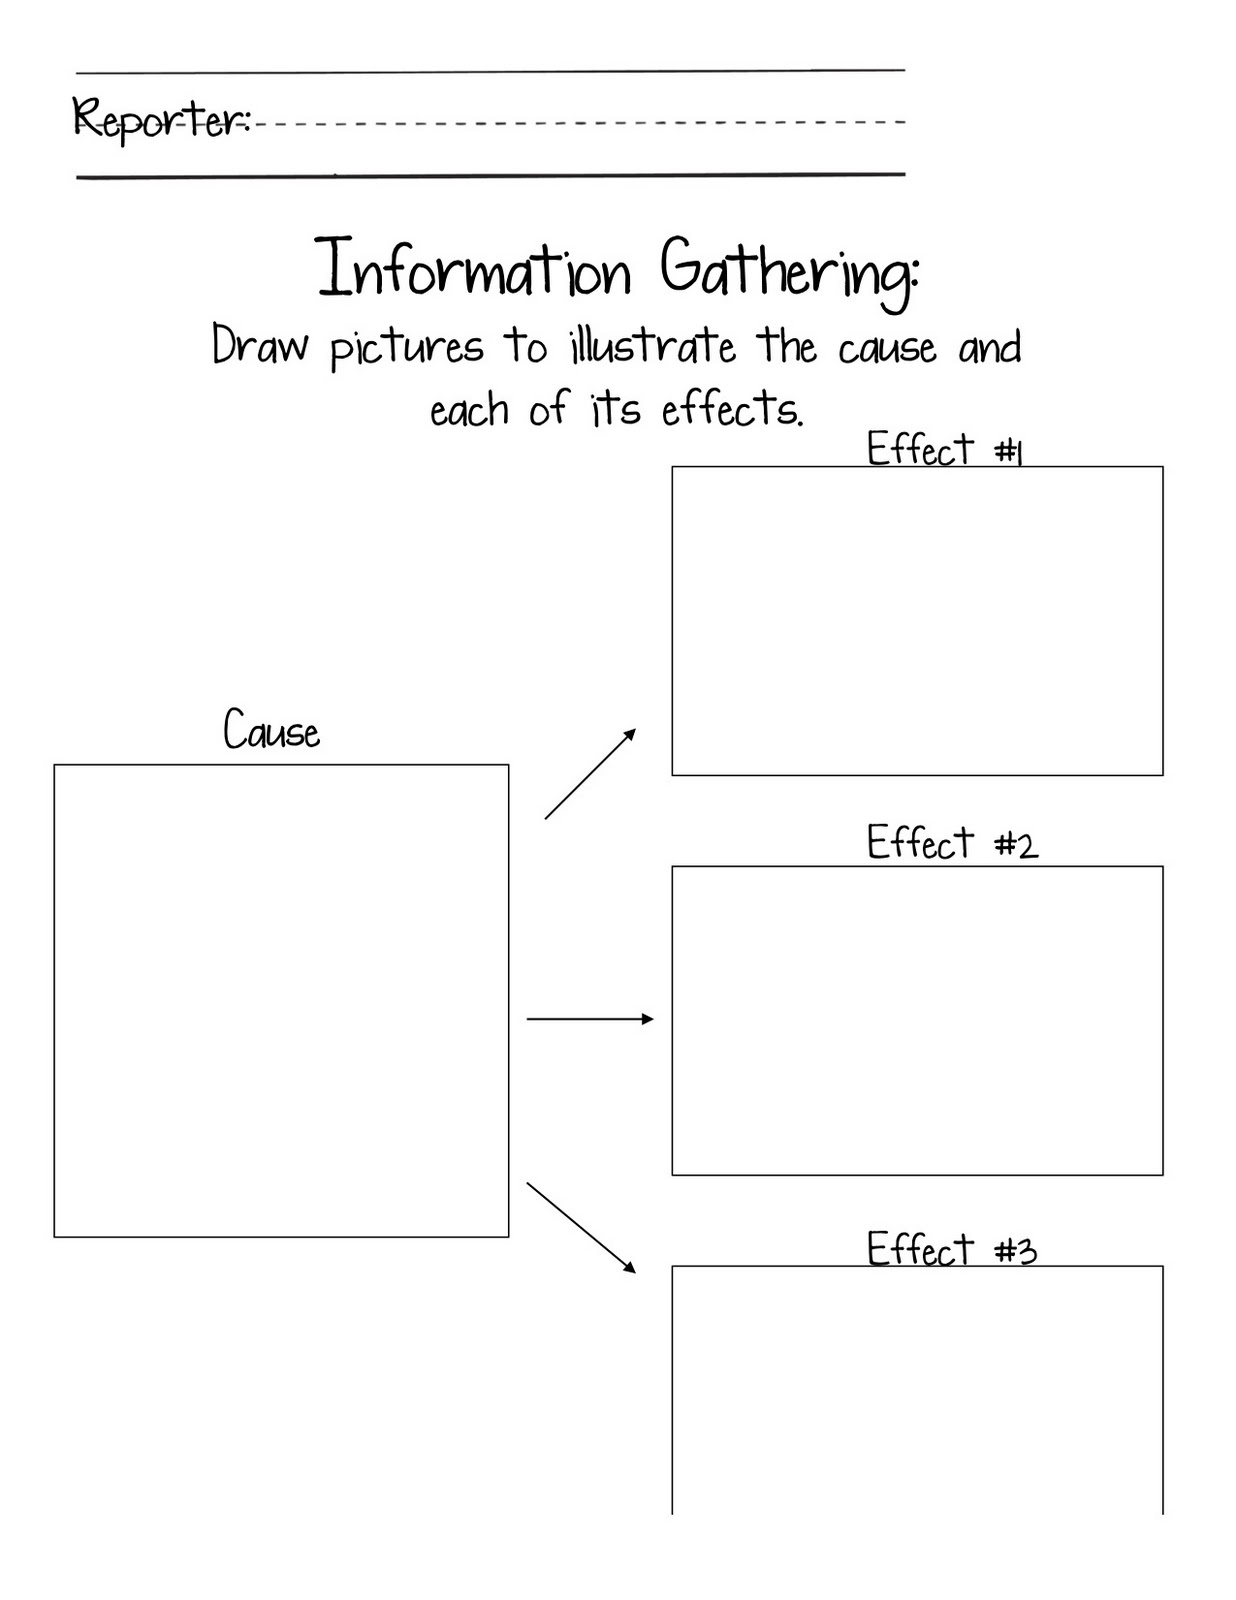 Draft an informational paragraph using a graphic organizer